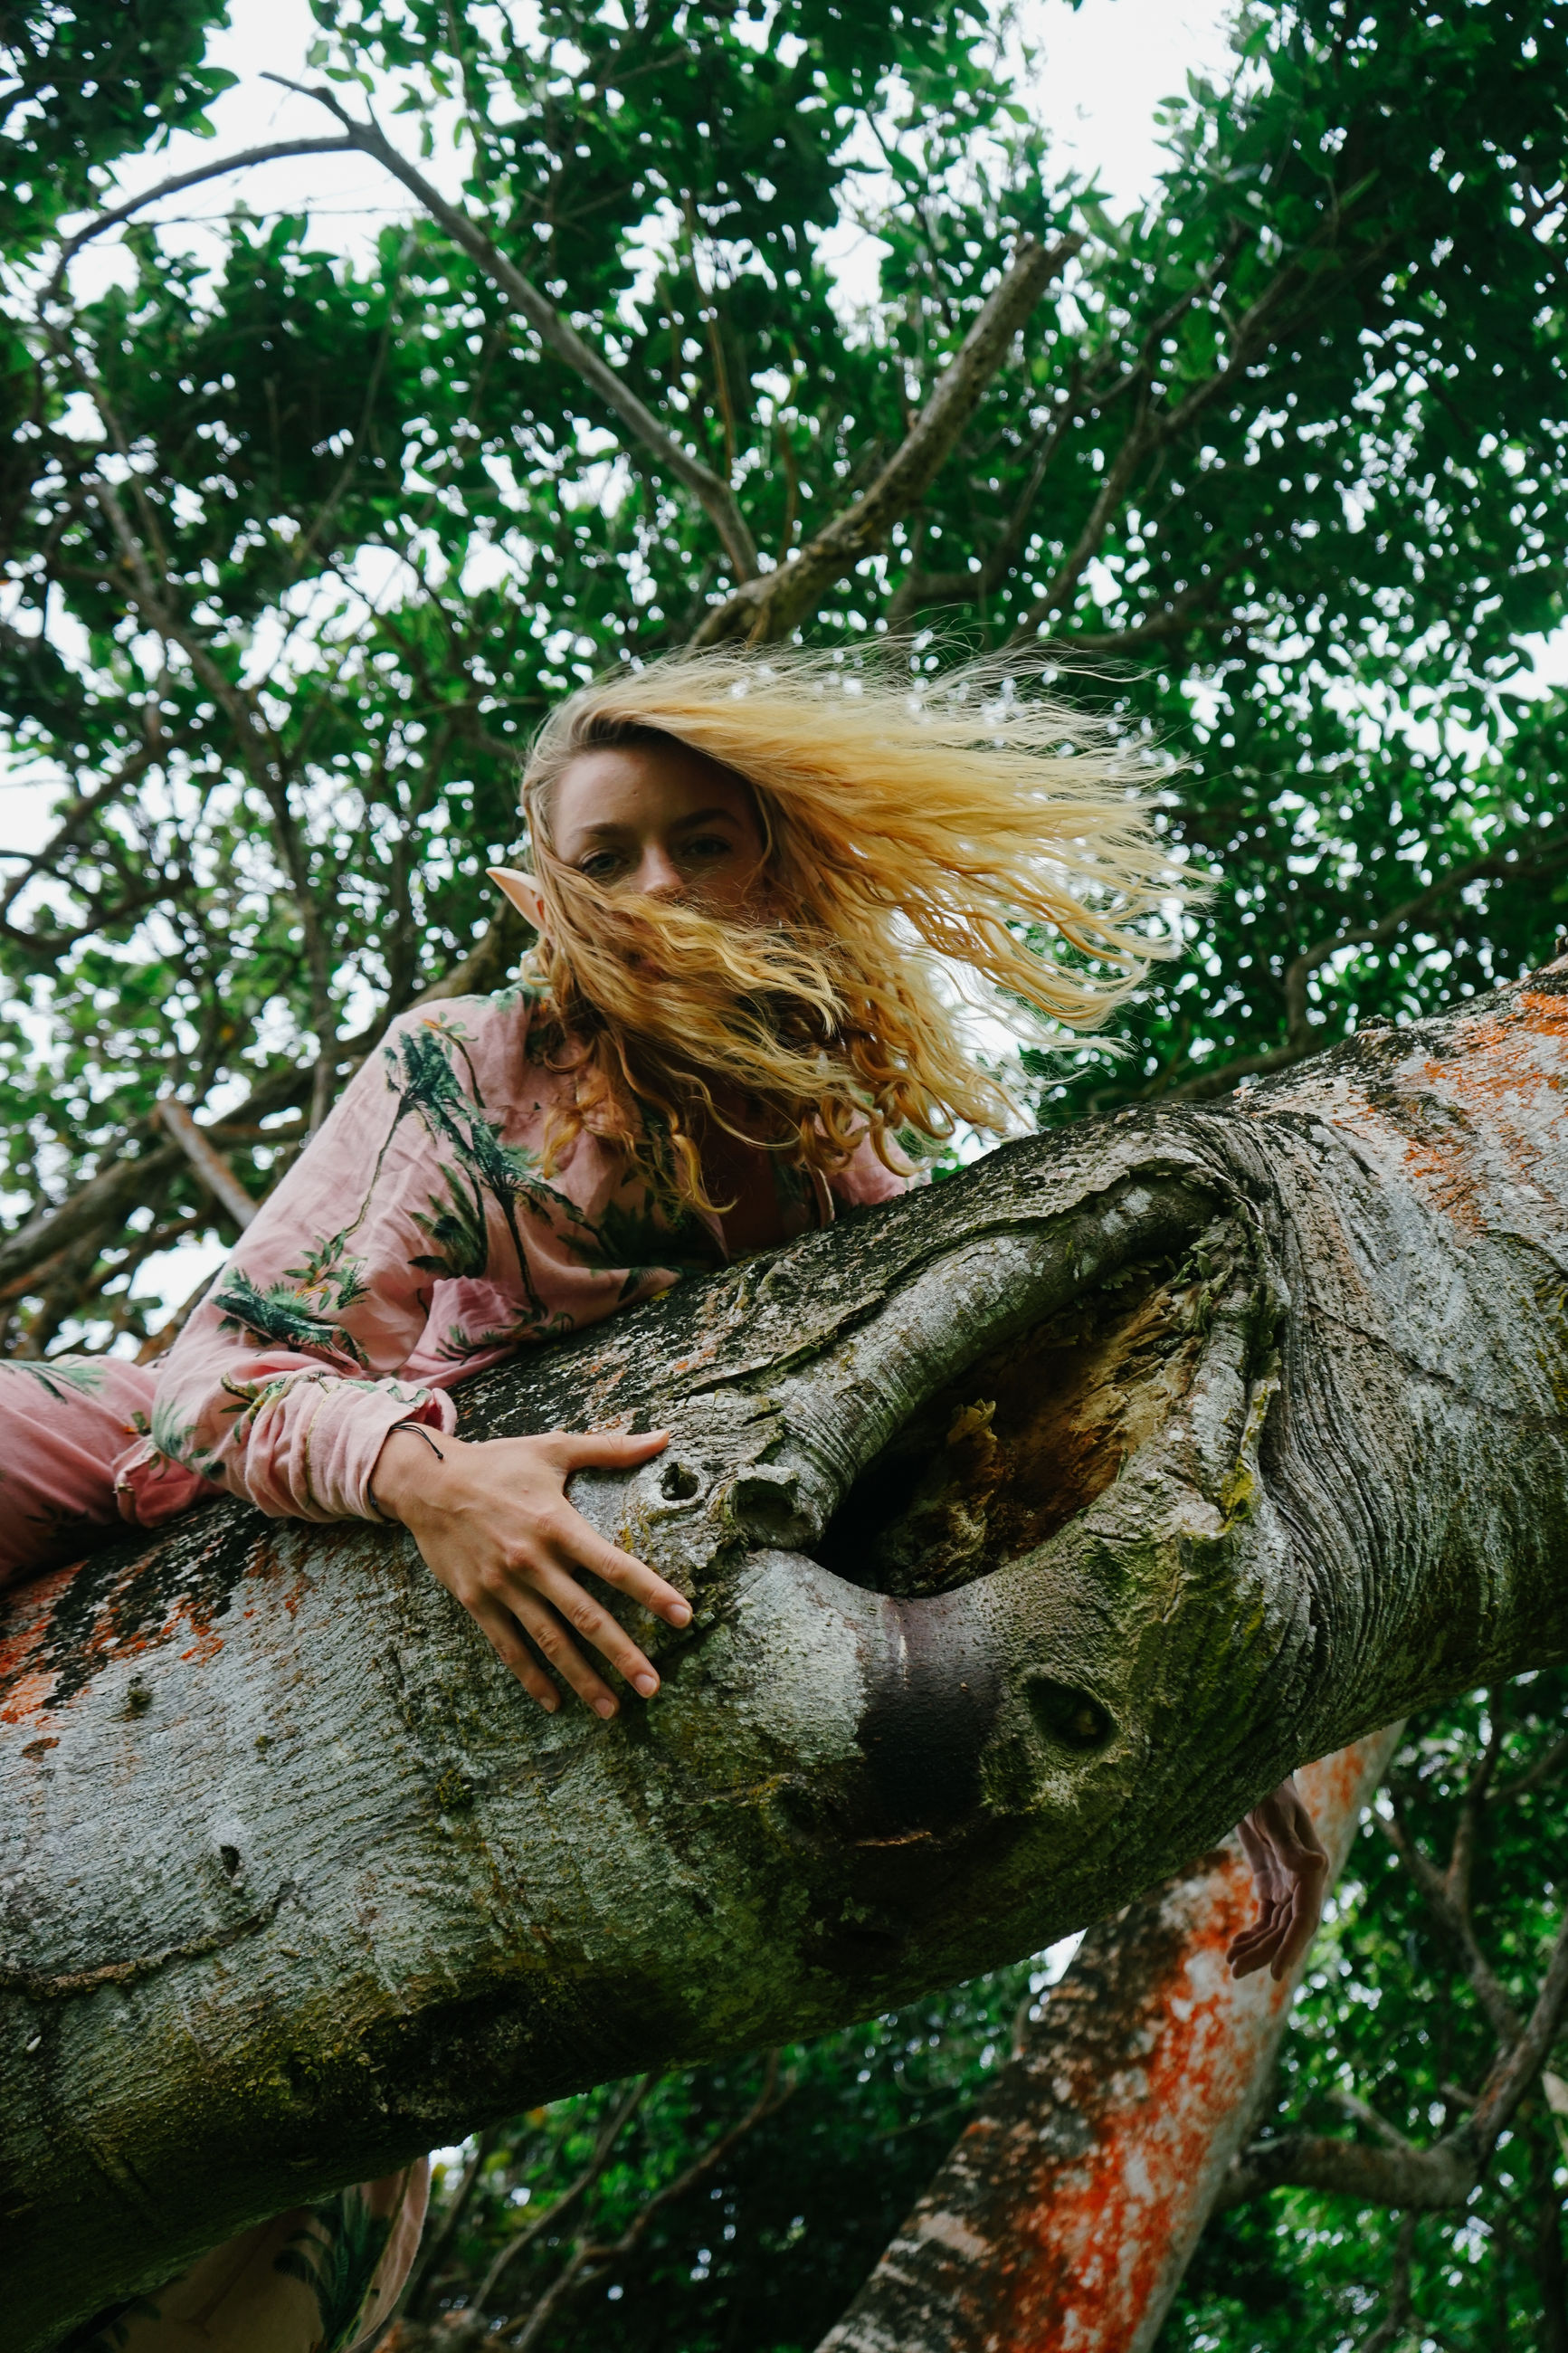 tree, plant, nature, one person, forest, jungle, women, adult, leisure activity, long hair, rainforest, hairstyle, blond hair, green, young adult, leaf, day, lifestyles, branch, flower, outdoors, casual clothing, person, autumn, natural environment, sitting, tree trunk, woodland, female, smiling, emotion, clothing, low angle view, wildlife, trunk, growth, full length, relaxation, sunlight